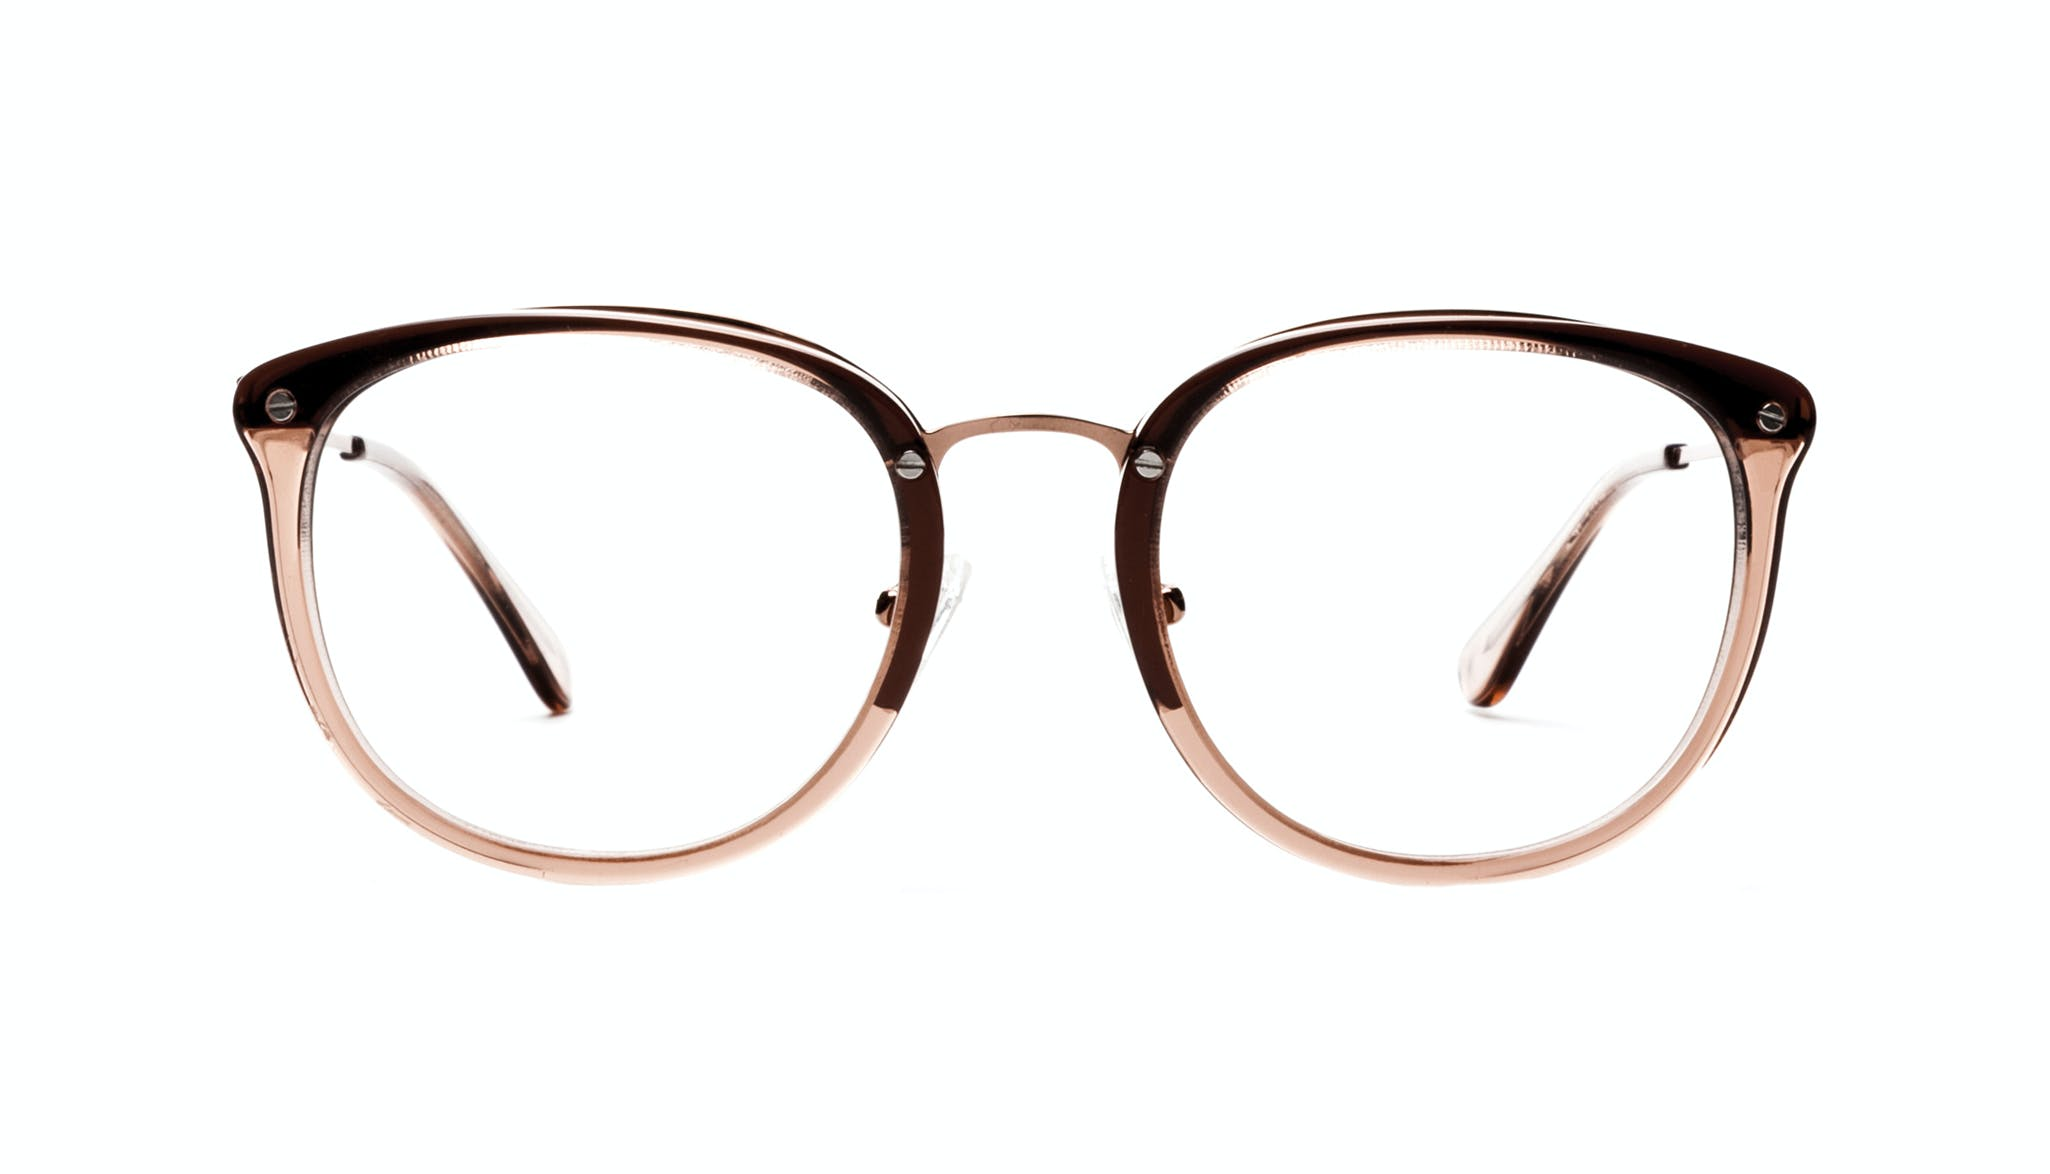 Affordable Fashion Glasses Square Round Eyeglasses Women Amaze Rose